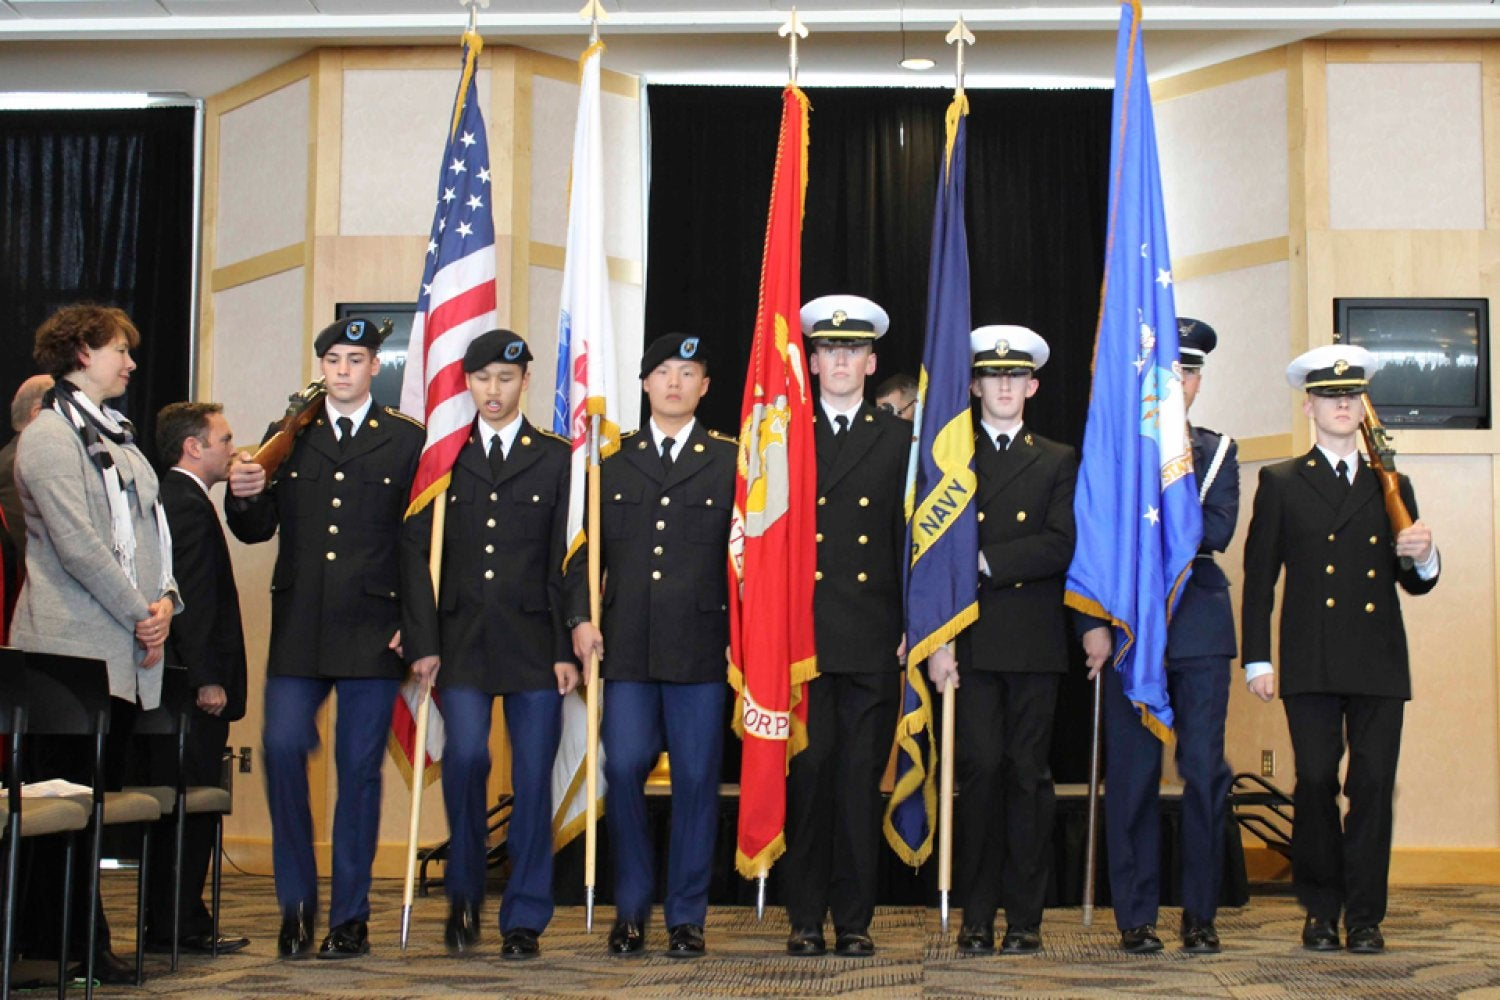 A photo showing the Color Guard presentation at the 2014 Veterans Day Ceremony